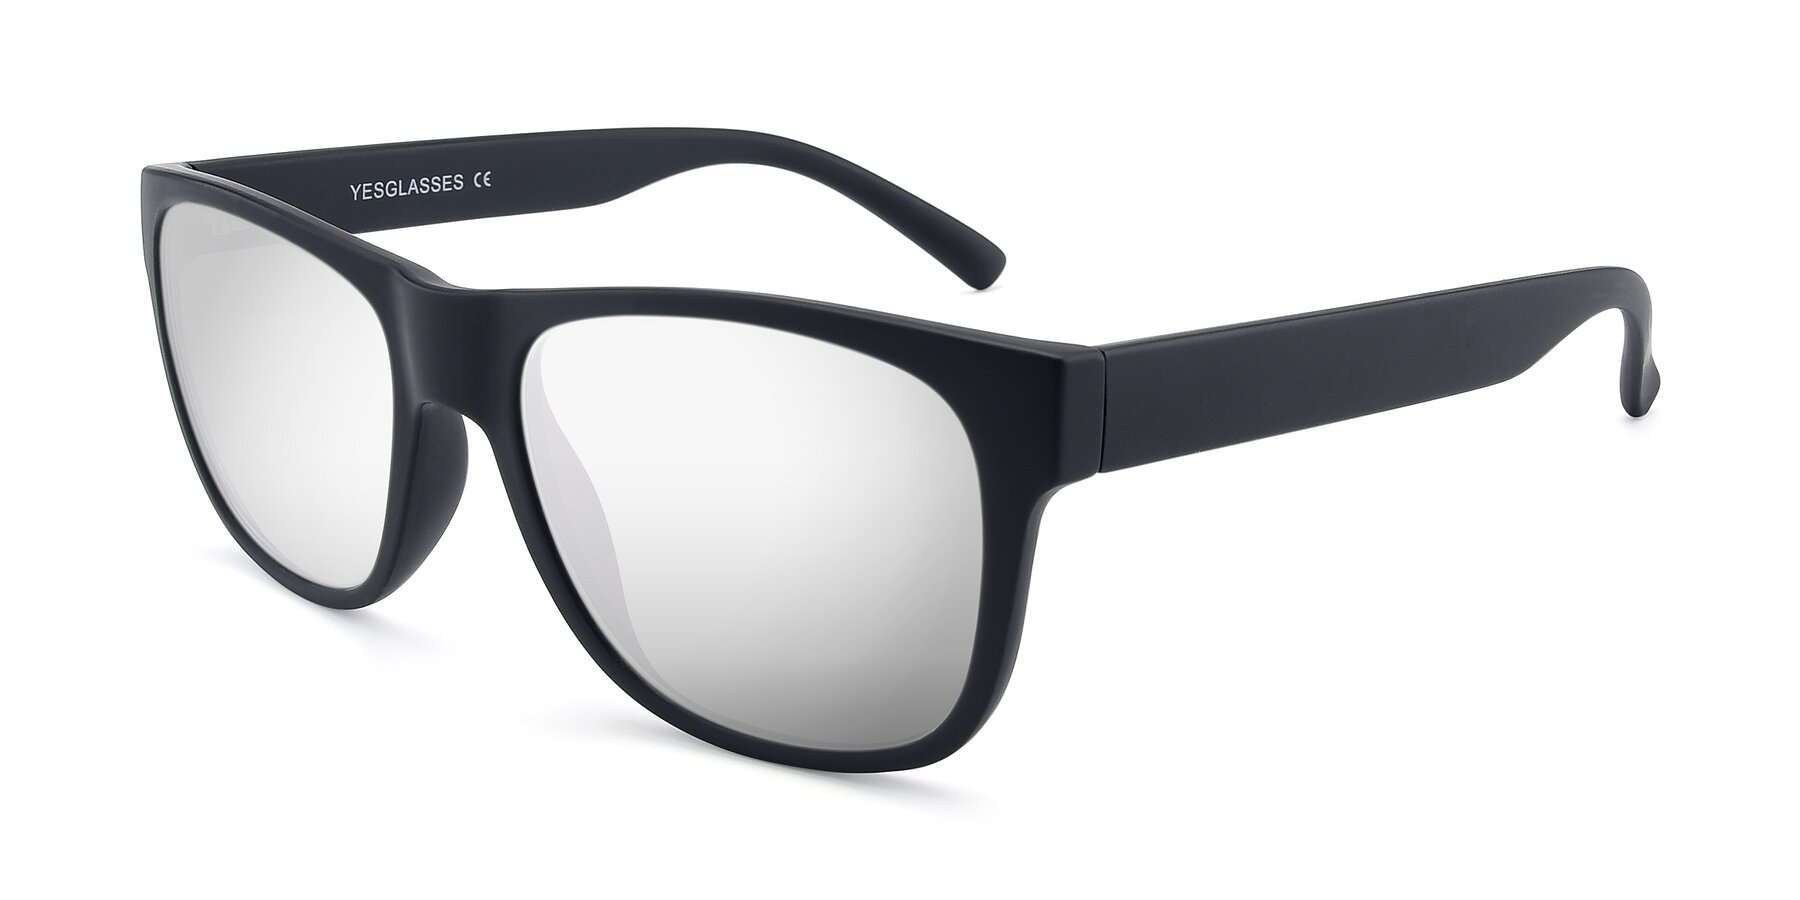 Angle of SSR213 in Matte Black with Silver Mirrored Lenses